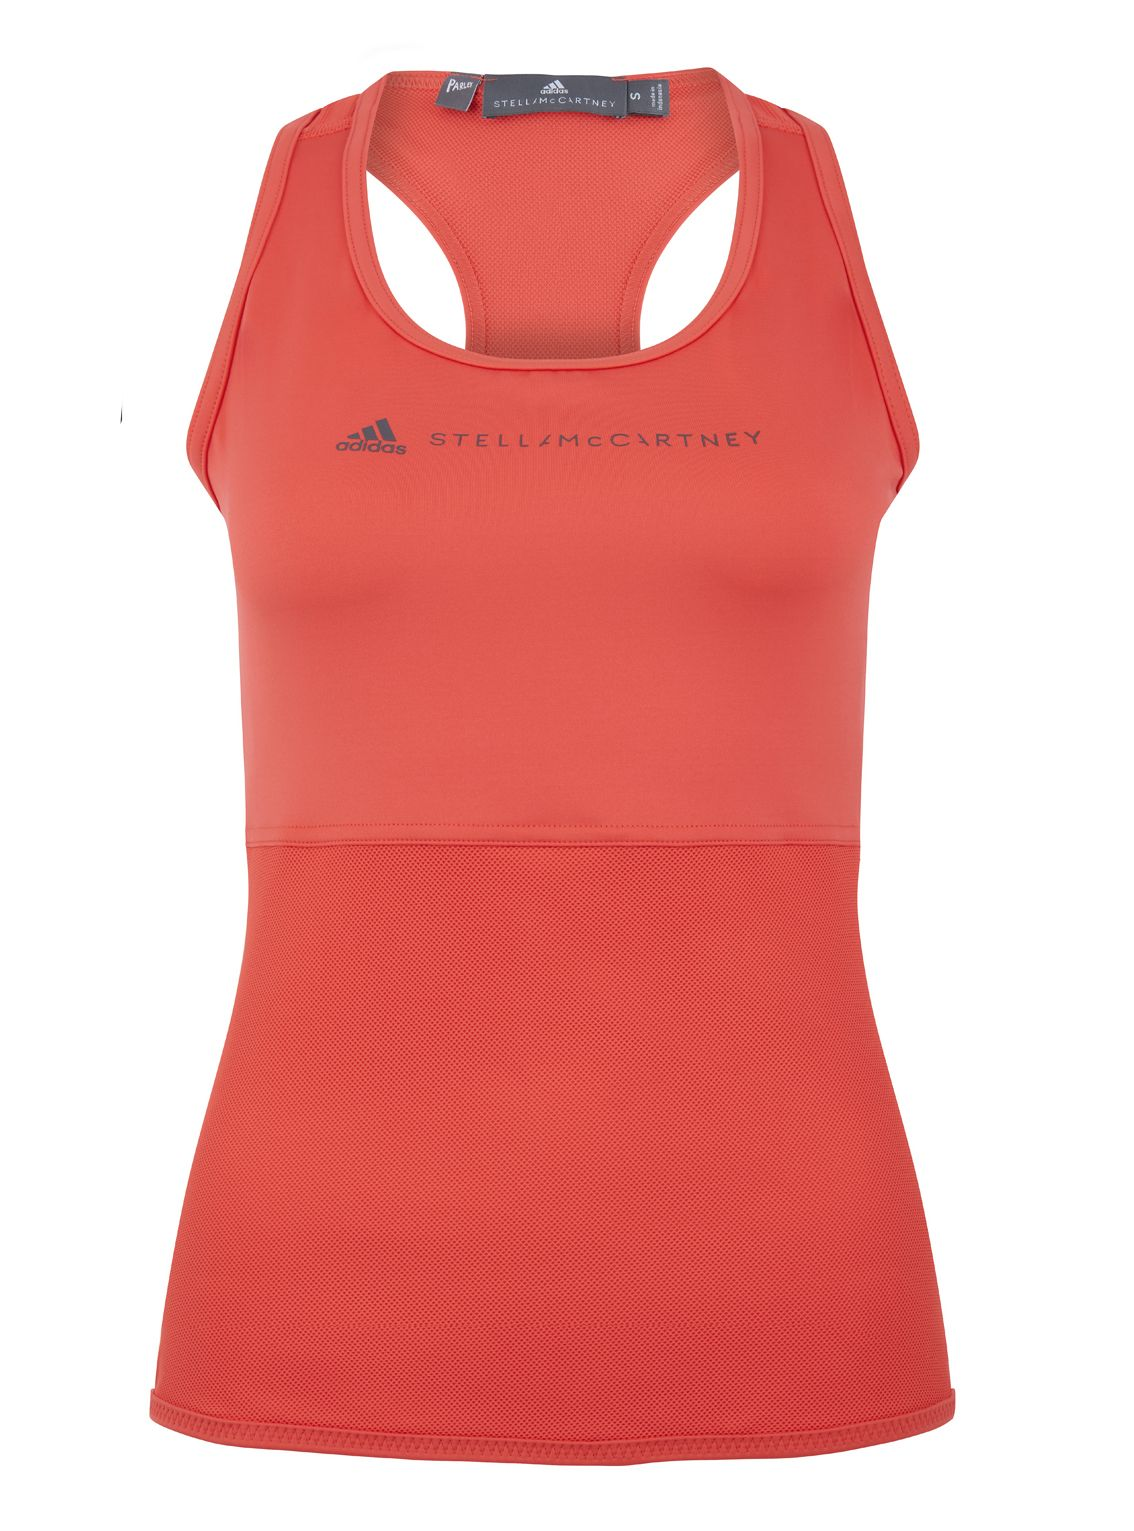 d5183be3991 Hot Coral Performance Essentials Tank Top in 2019 | || FASHERCISE ...